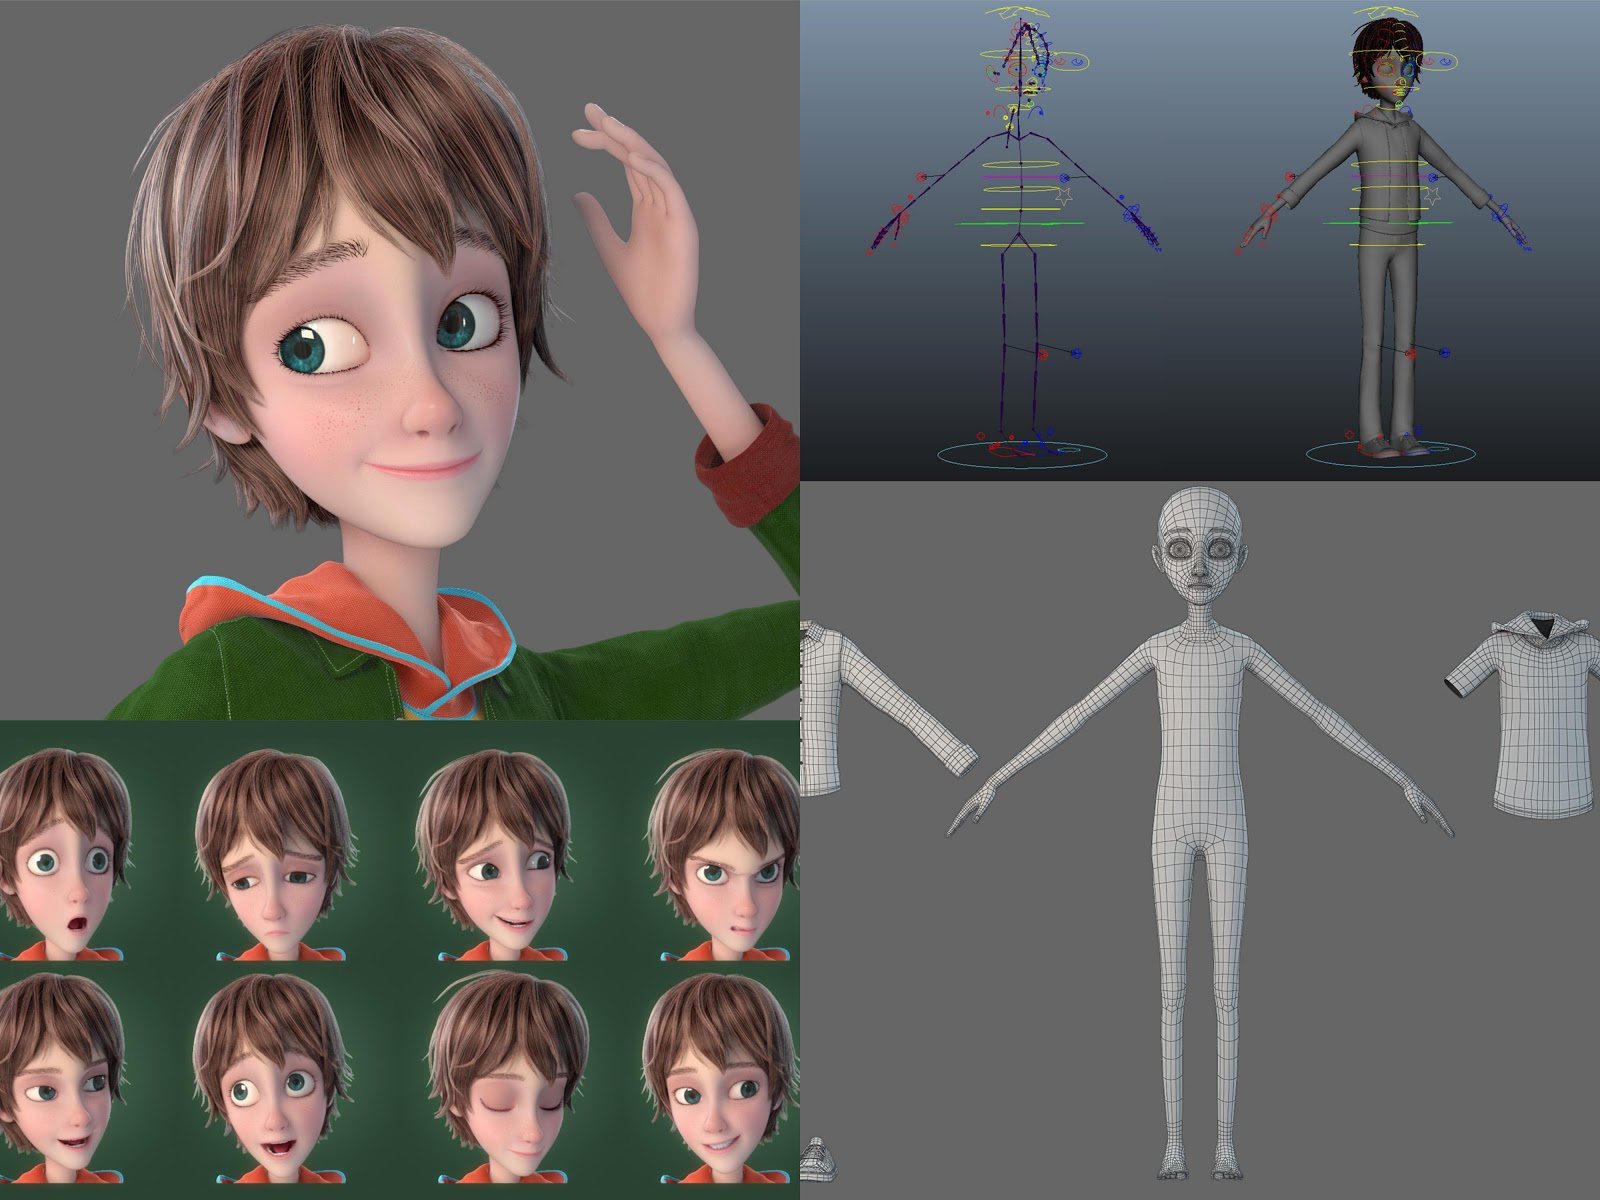 Cartoon boy 3D model includes photos of rigging, wireframes, and expression sheet